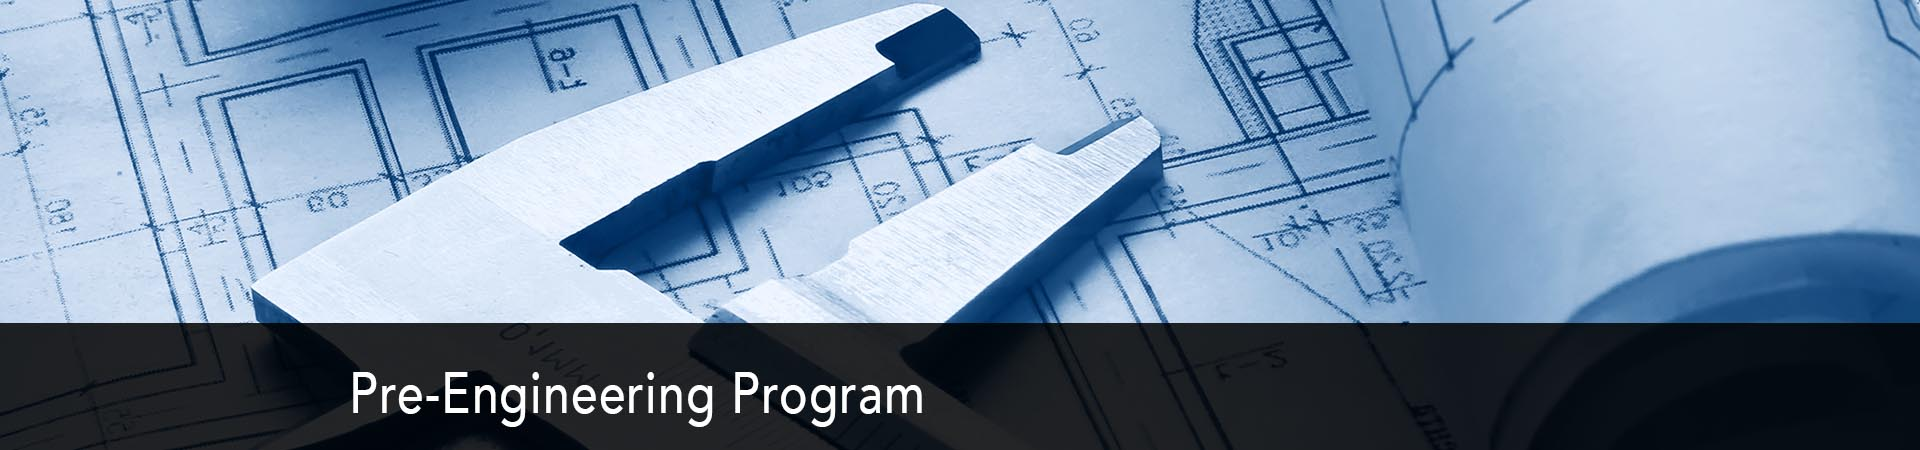 Explore the Pre-Engineering Program at NC